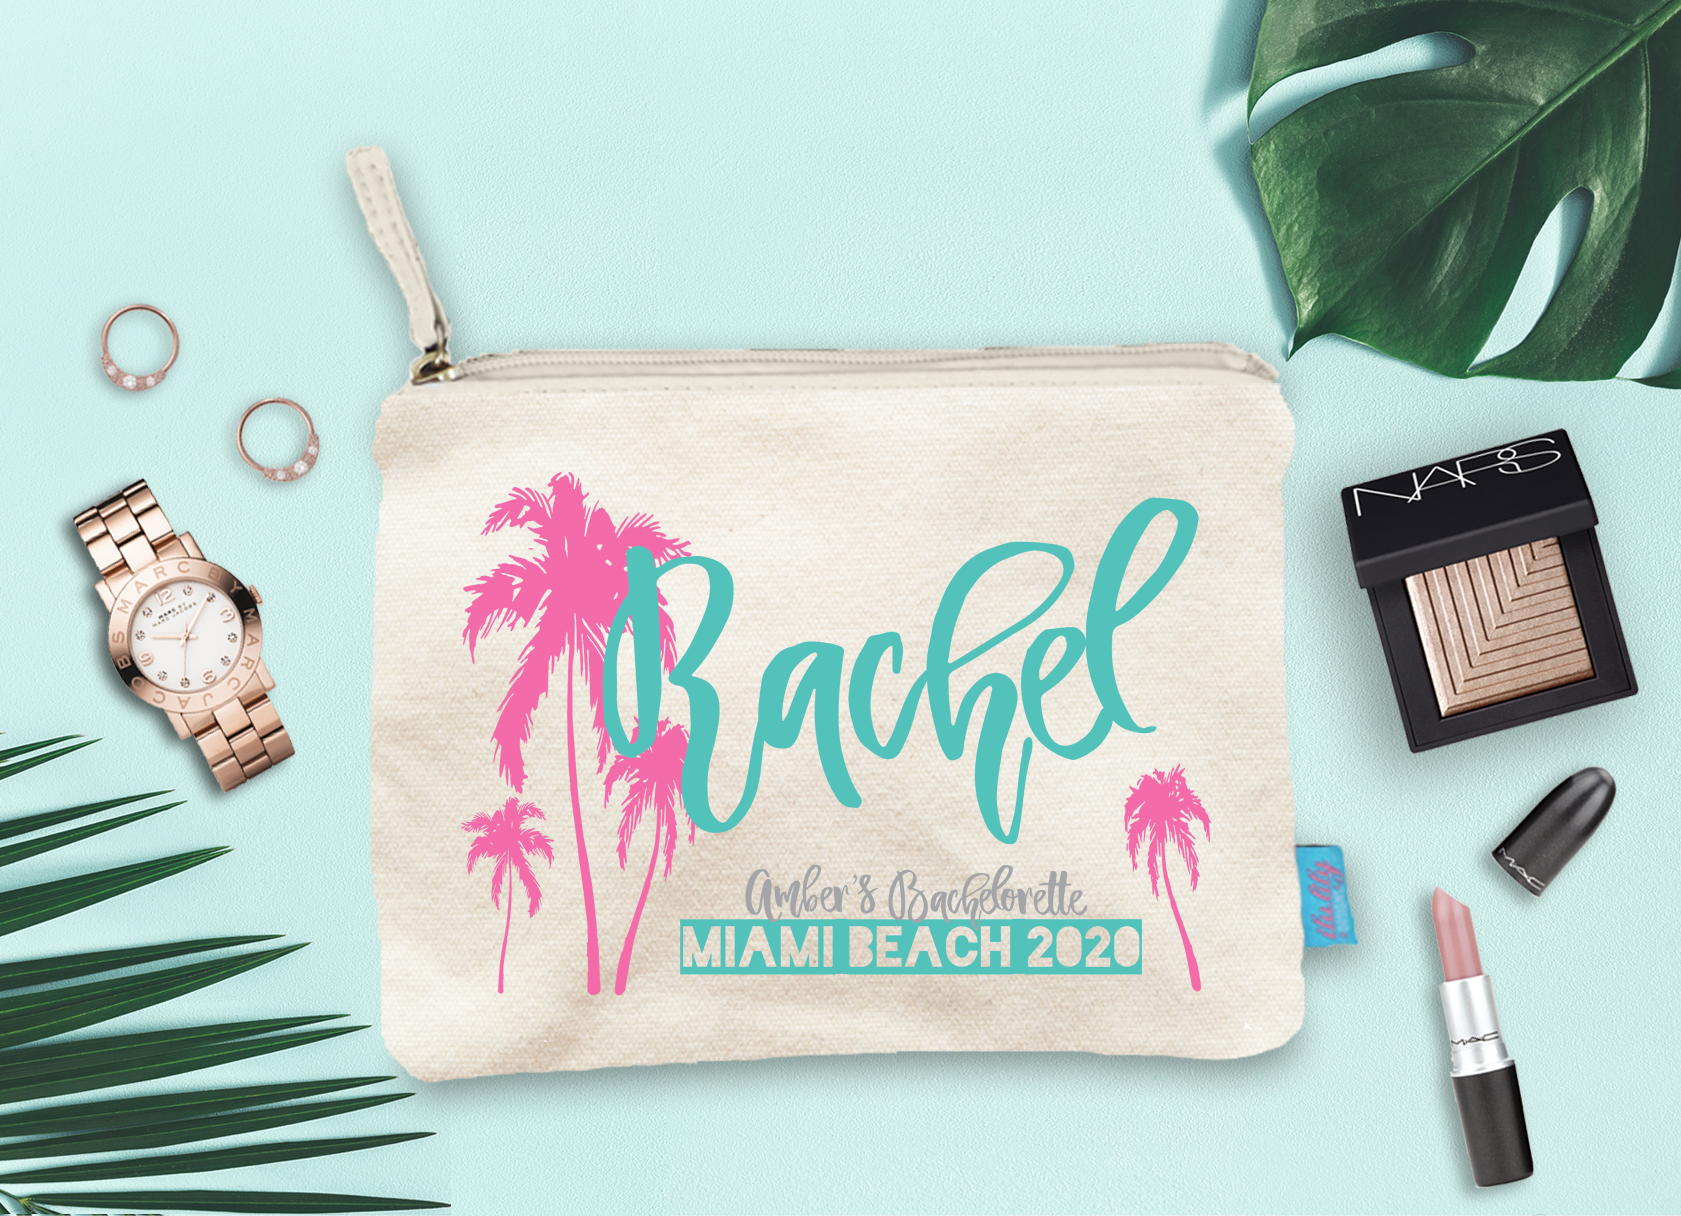 Miami Beach Bachelorette Party Palm Trees Personalized Makeup Cosmetic Bag